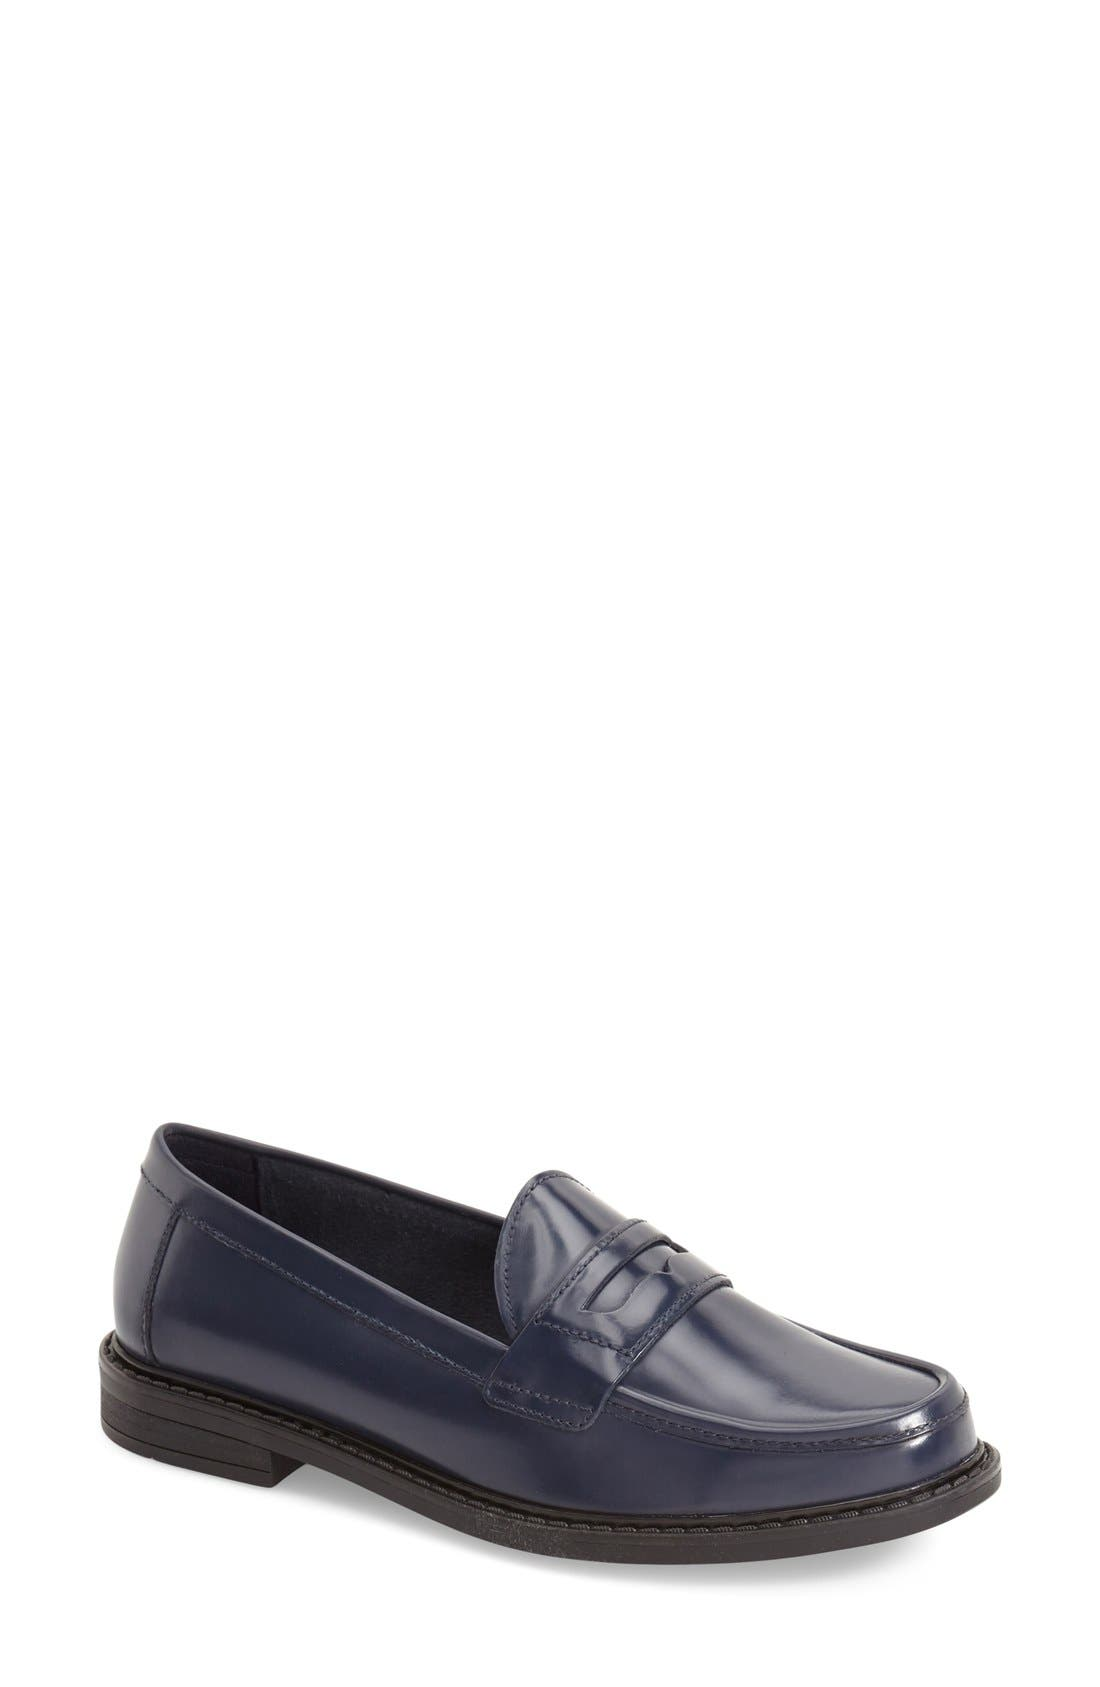 Alternate Image 1 Selected - Cole Haan 'Pinch Campus' Penny Loafer (Women)